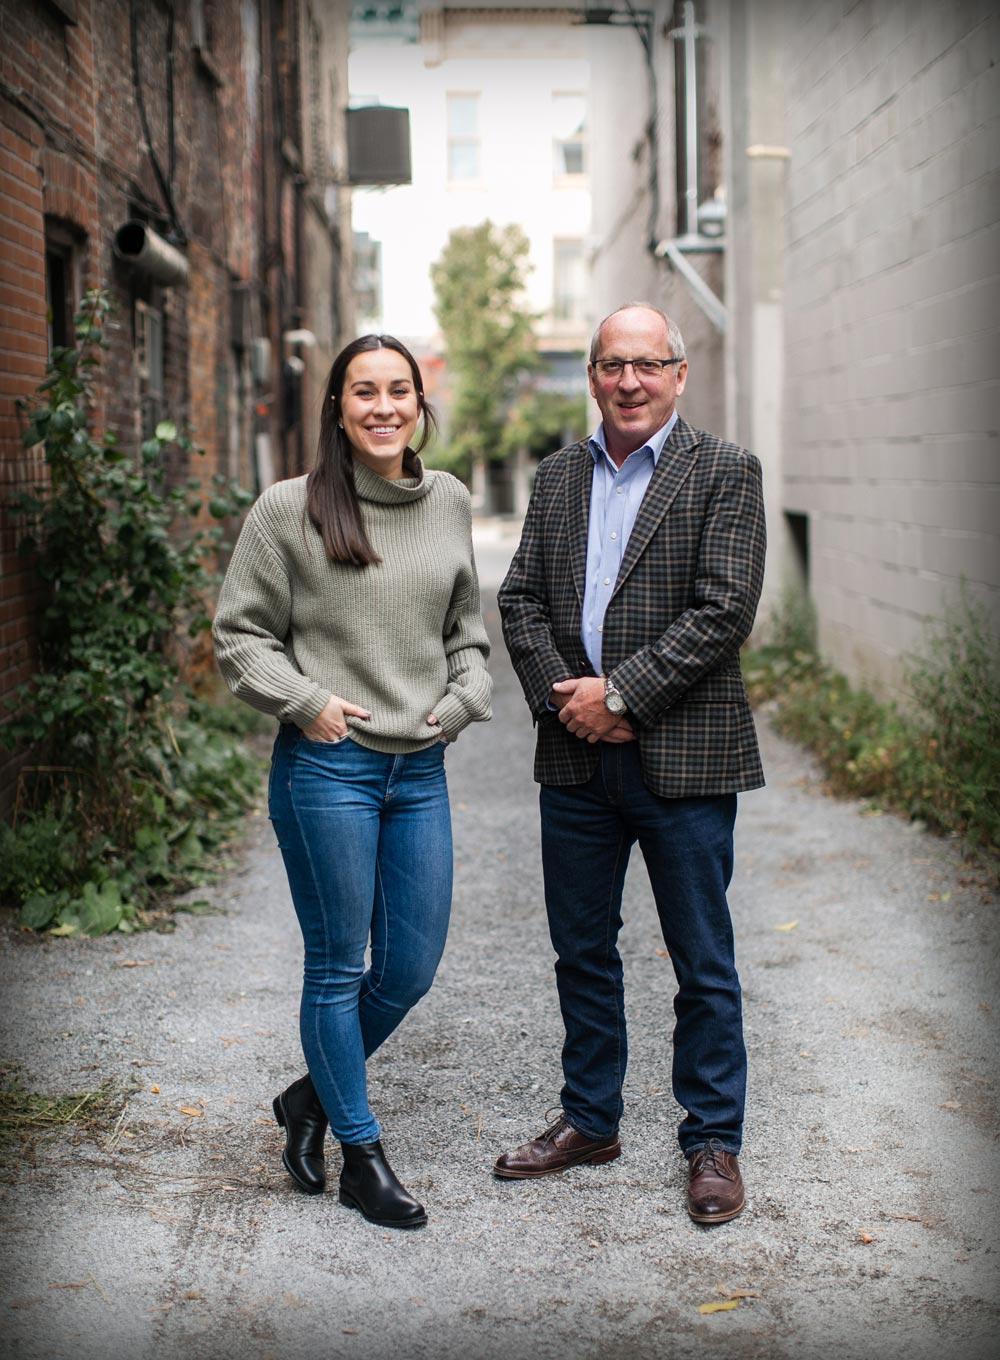 Ken and Laura Barrick standing with smiles in urban setting in downtown Peterborough, Ontario.